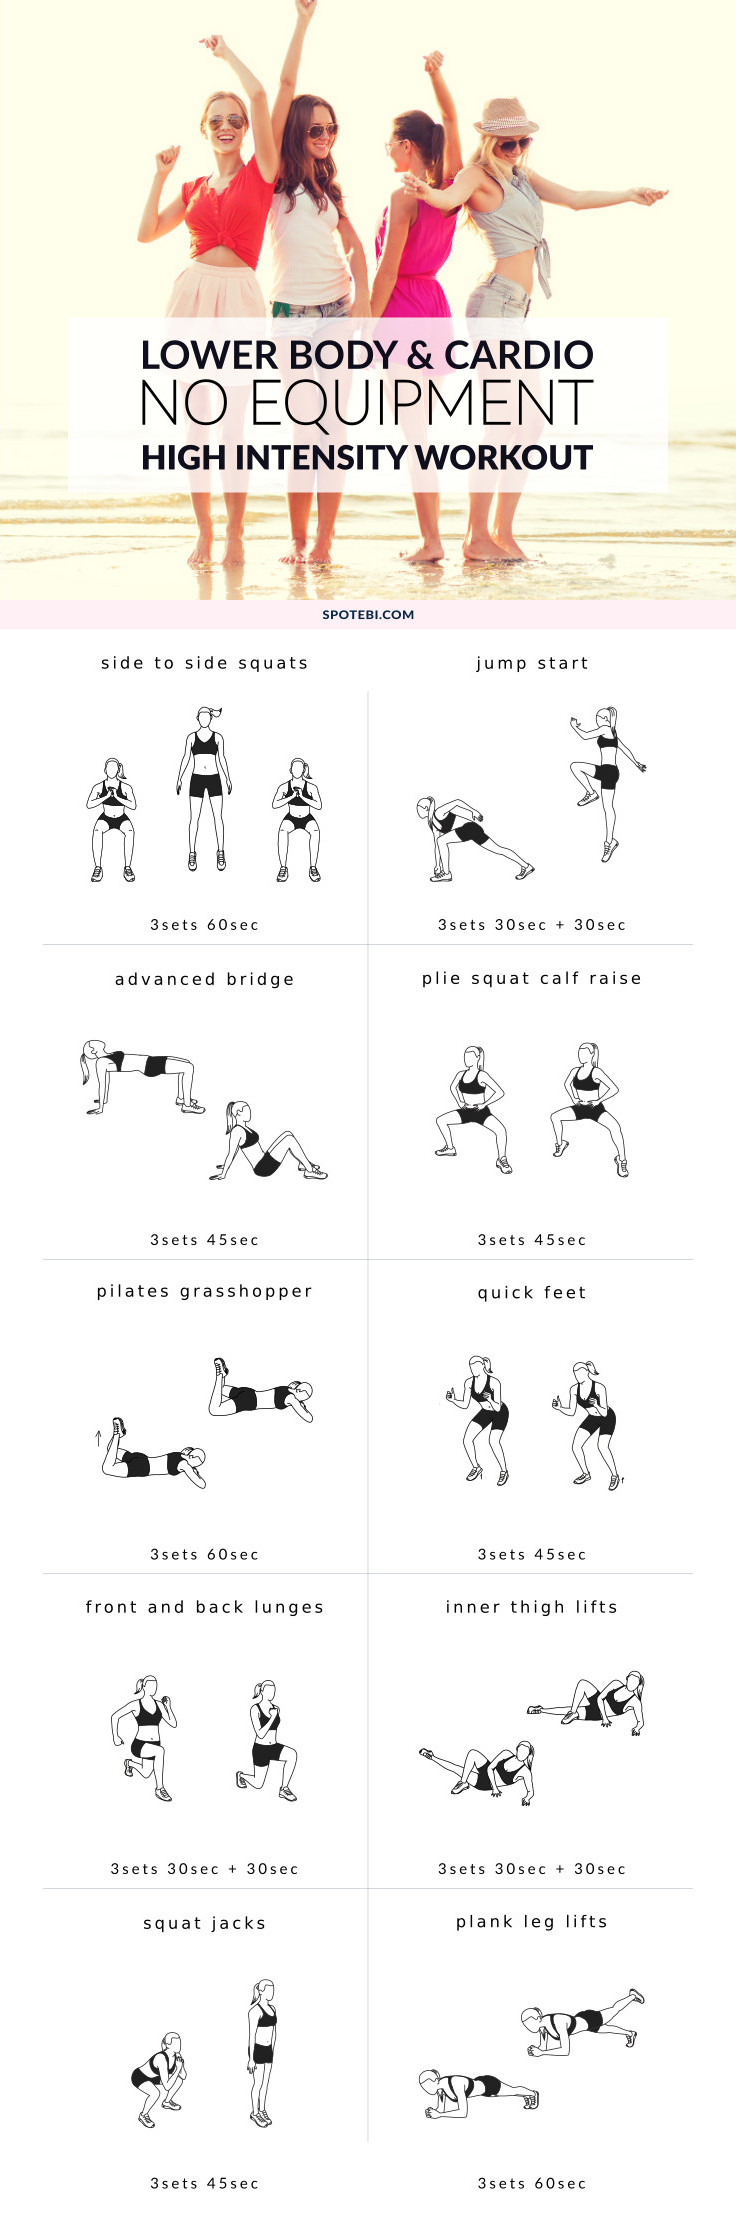 Sculpt strong, sexy legs and glutes with this high-intensity no-equipment workout. A 29-minute circuit to maximize your metabolism, torch calories and build lean muscle! https://www.spotebi.com/workout-routines/high-intensity-no-equipment-workout/